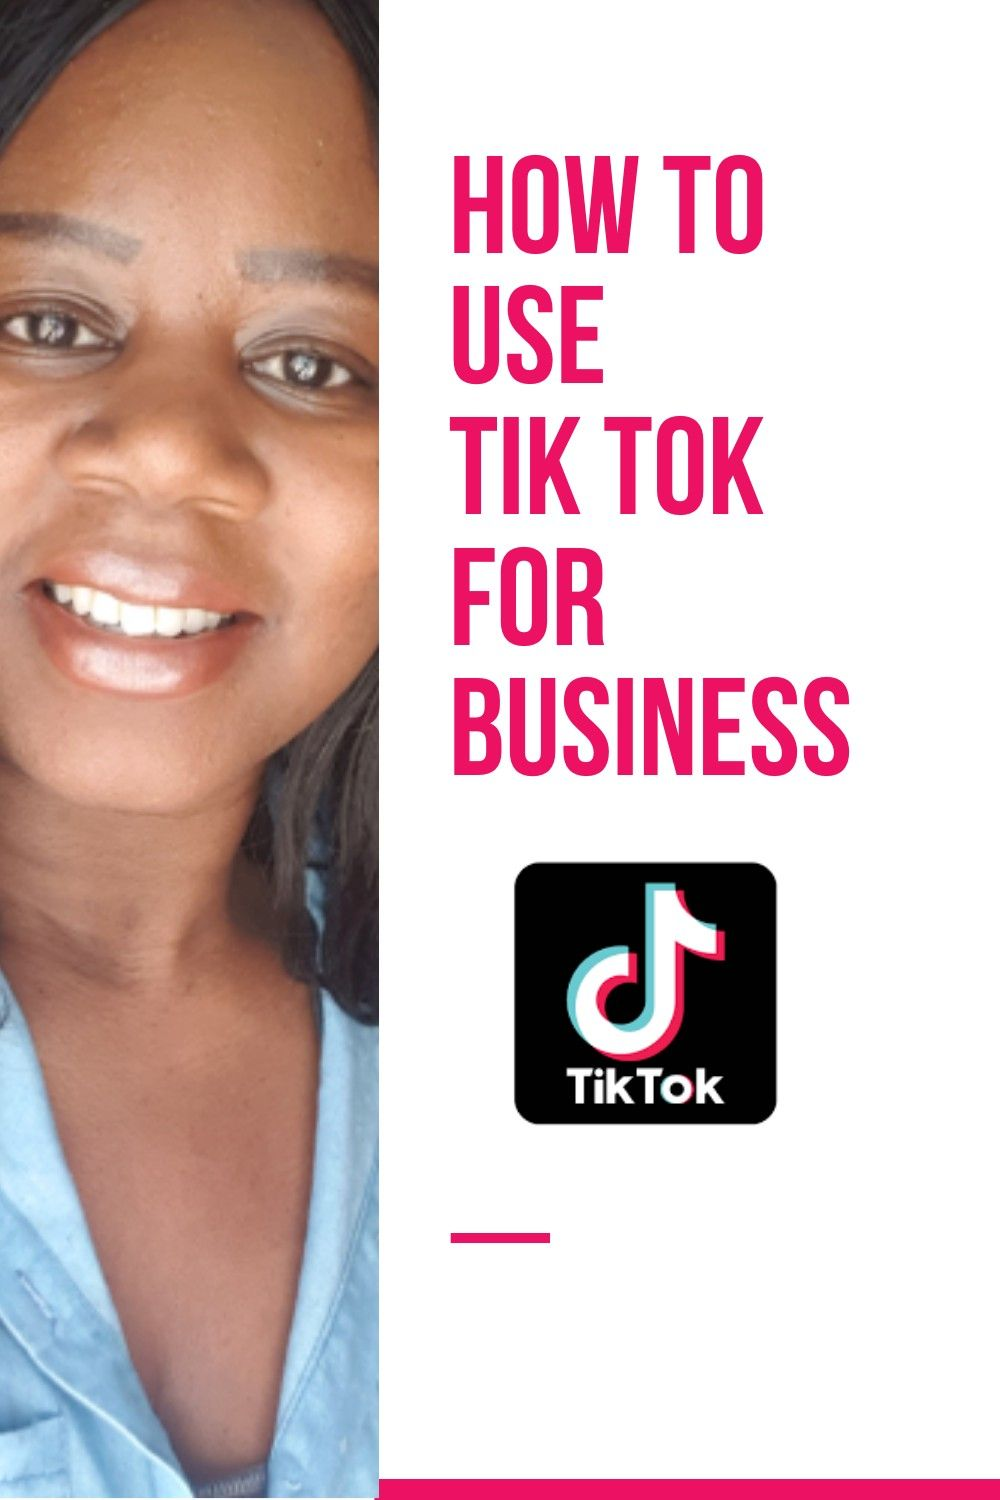 How To Use Tik Tok For Business Social Media Growth Strategy Social Media Marketing Trends Facebook Strategy